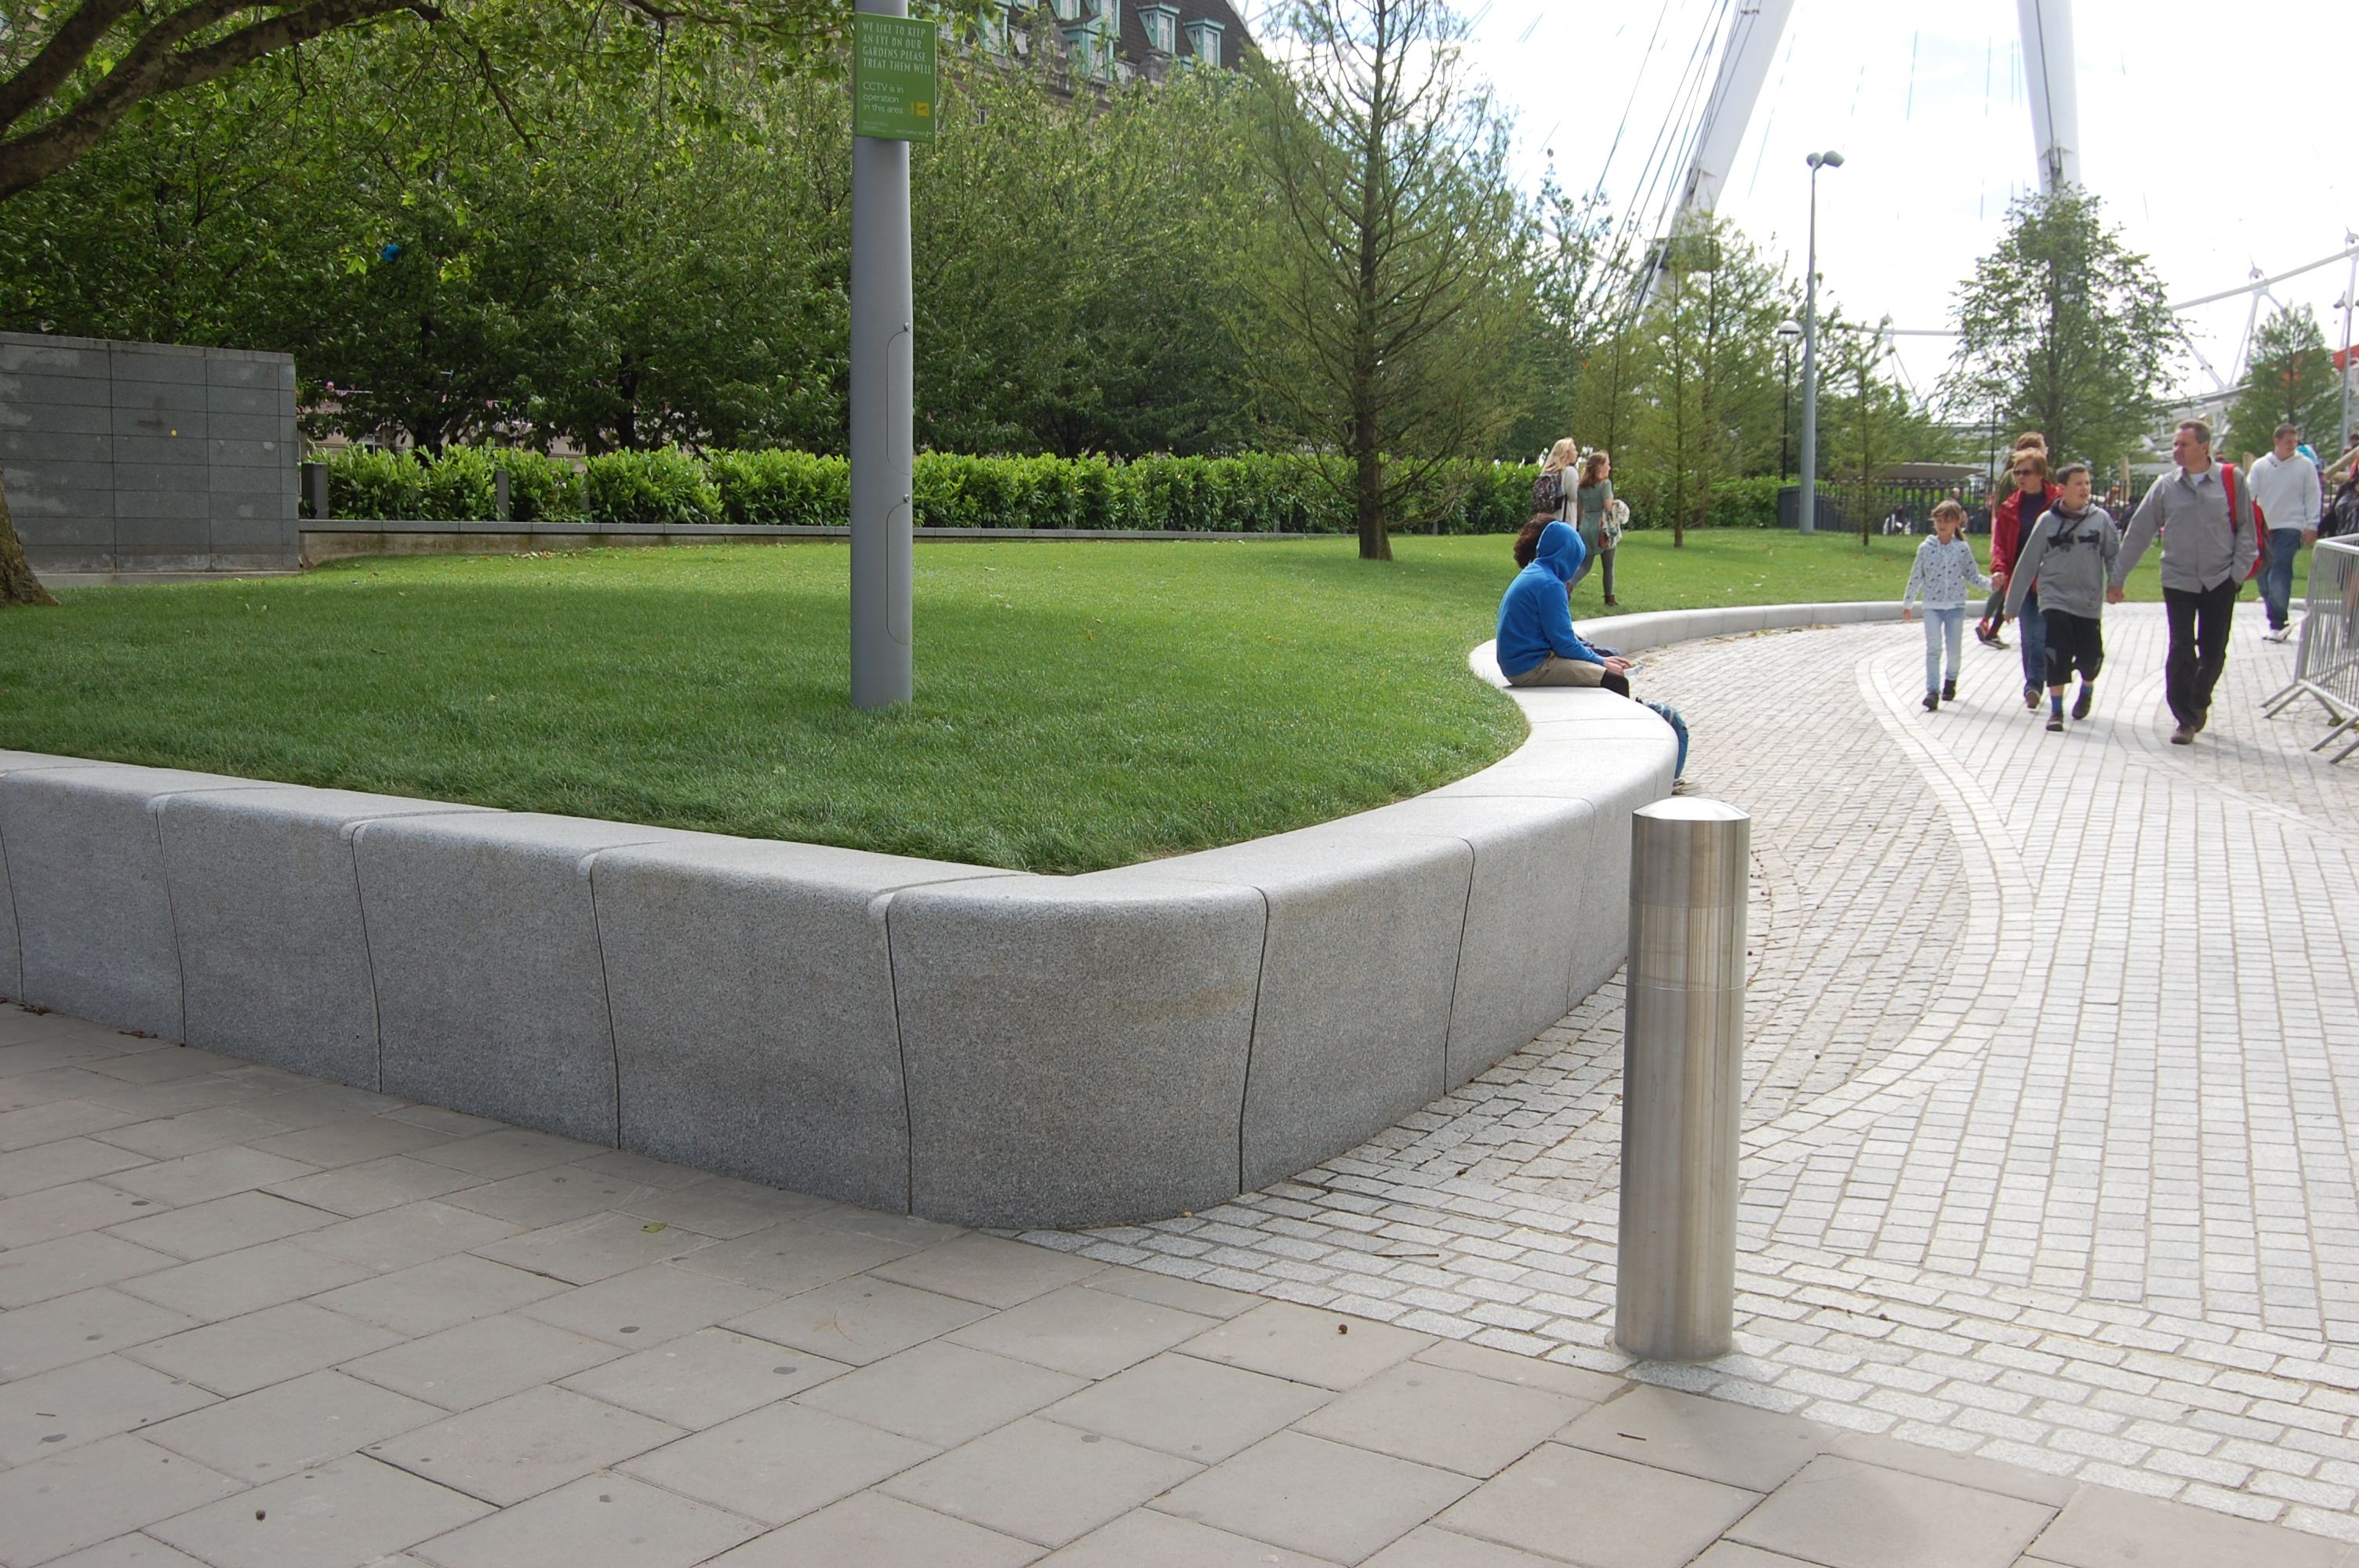 Jubilee Gardens London South Bank Designed By Landscape Architects West 8 Jubilee Gardens Wall Seating Easy Landscaping